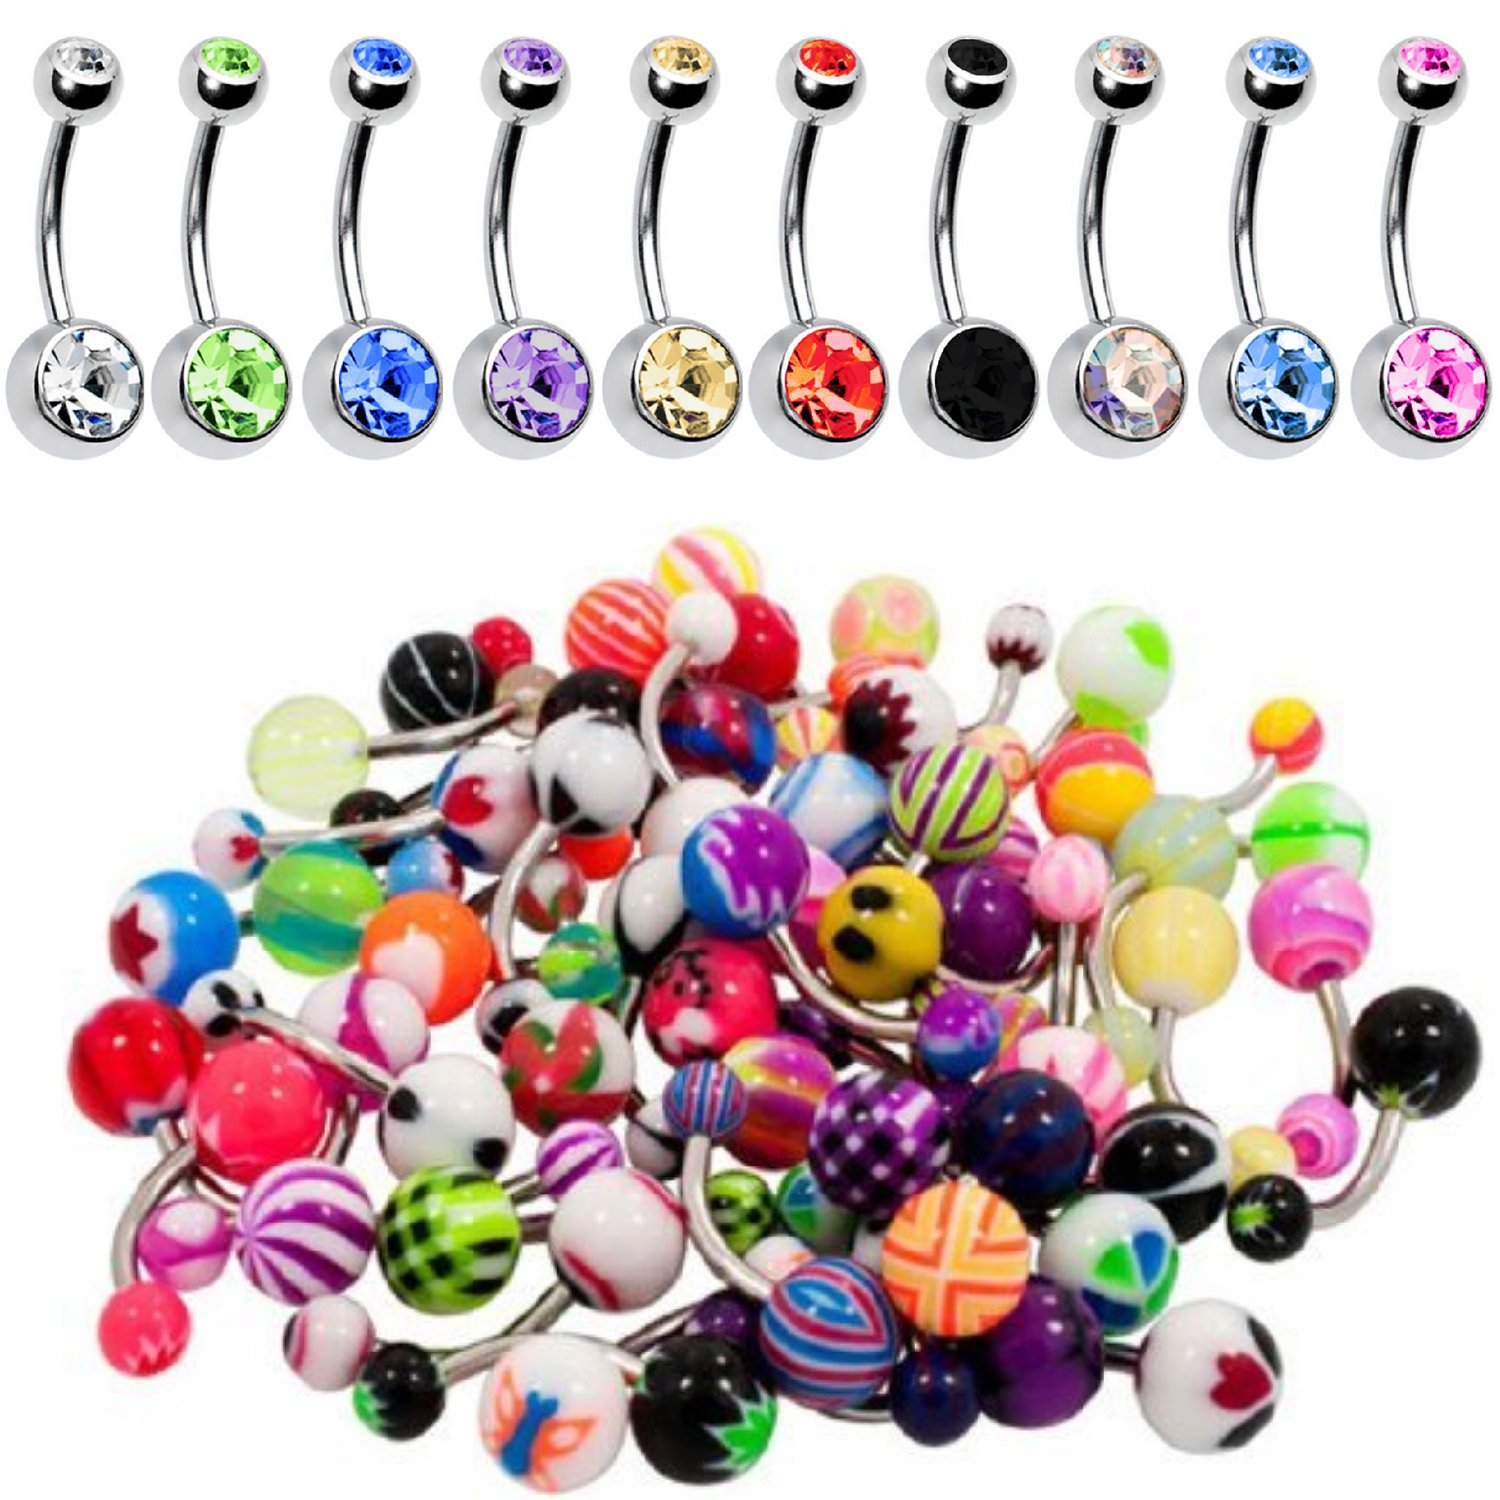 BodyJ4You 60PC Belly Button Ring Set 14G Mix CZ Stainless Steel Acrylic Banana Body Piercing Jewelry by BodyJ4You